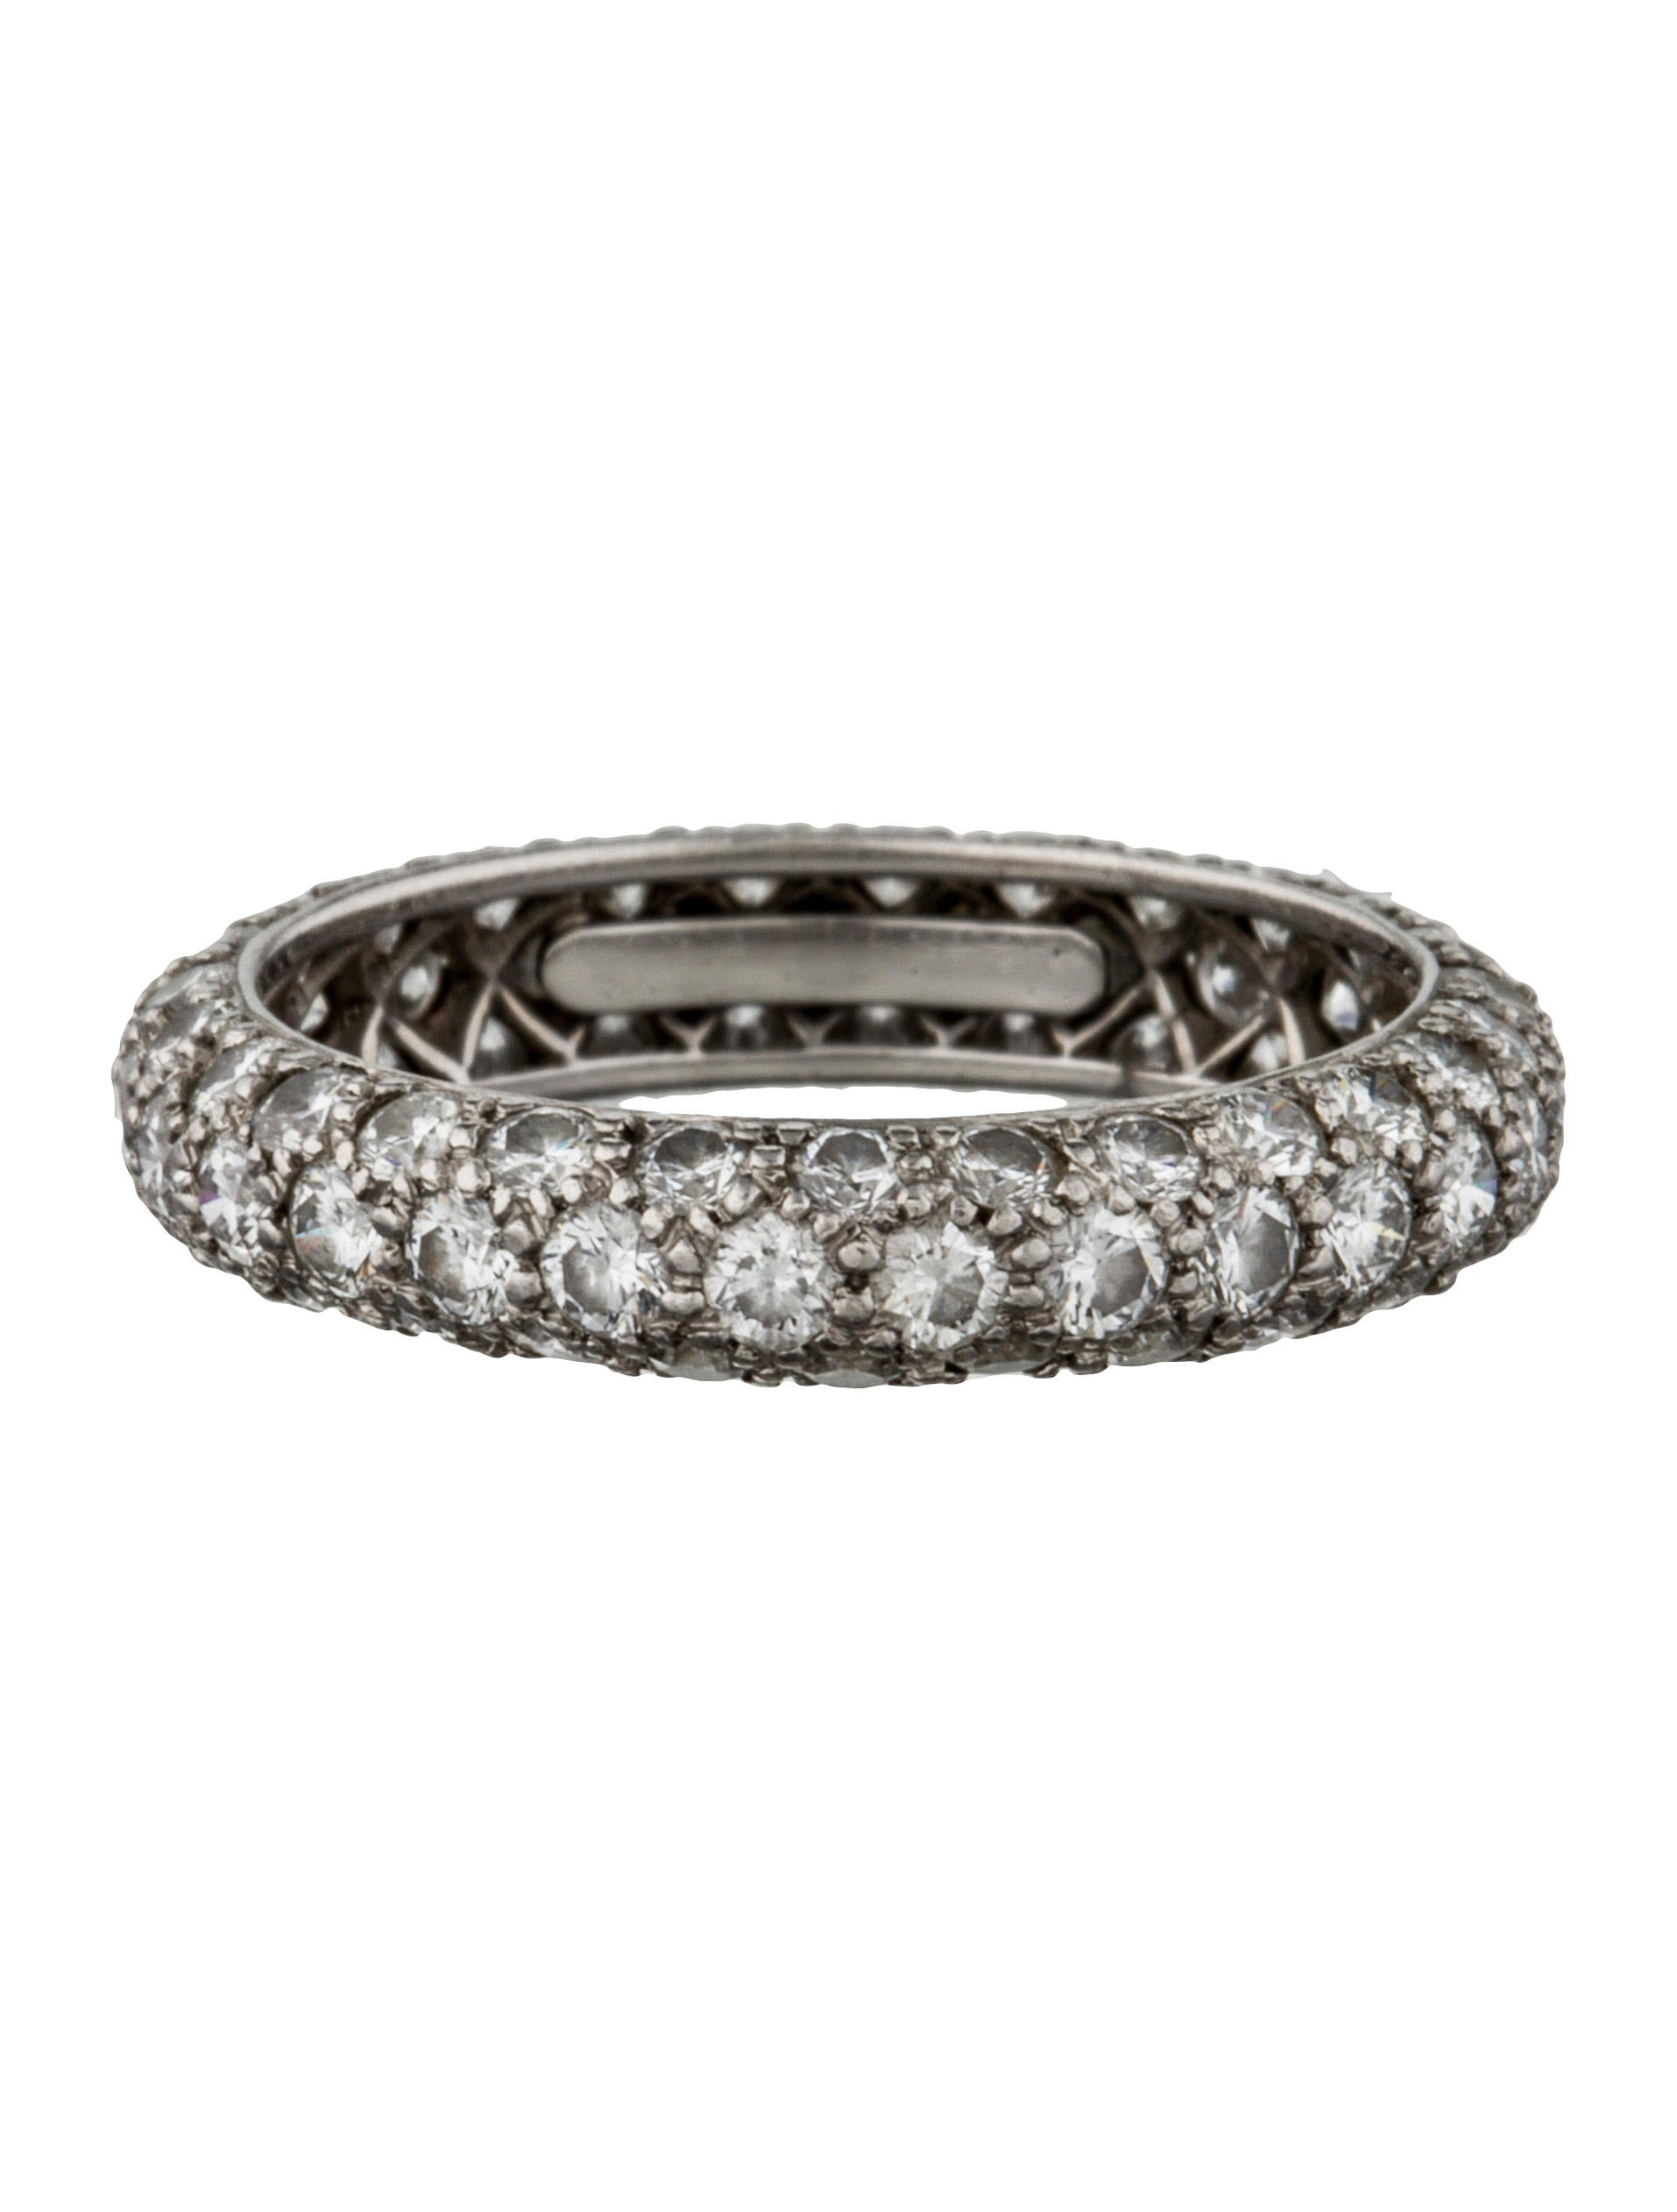 Tiffany Amp Co Etoile Three Row Band Rings Tif34577